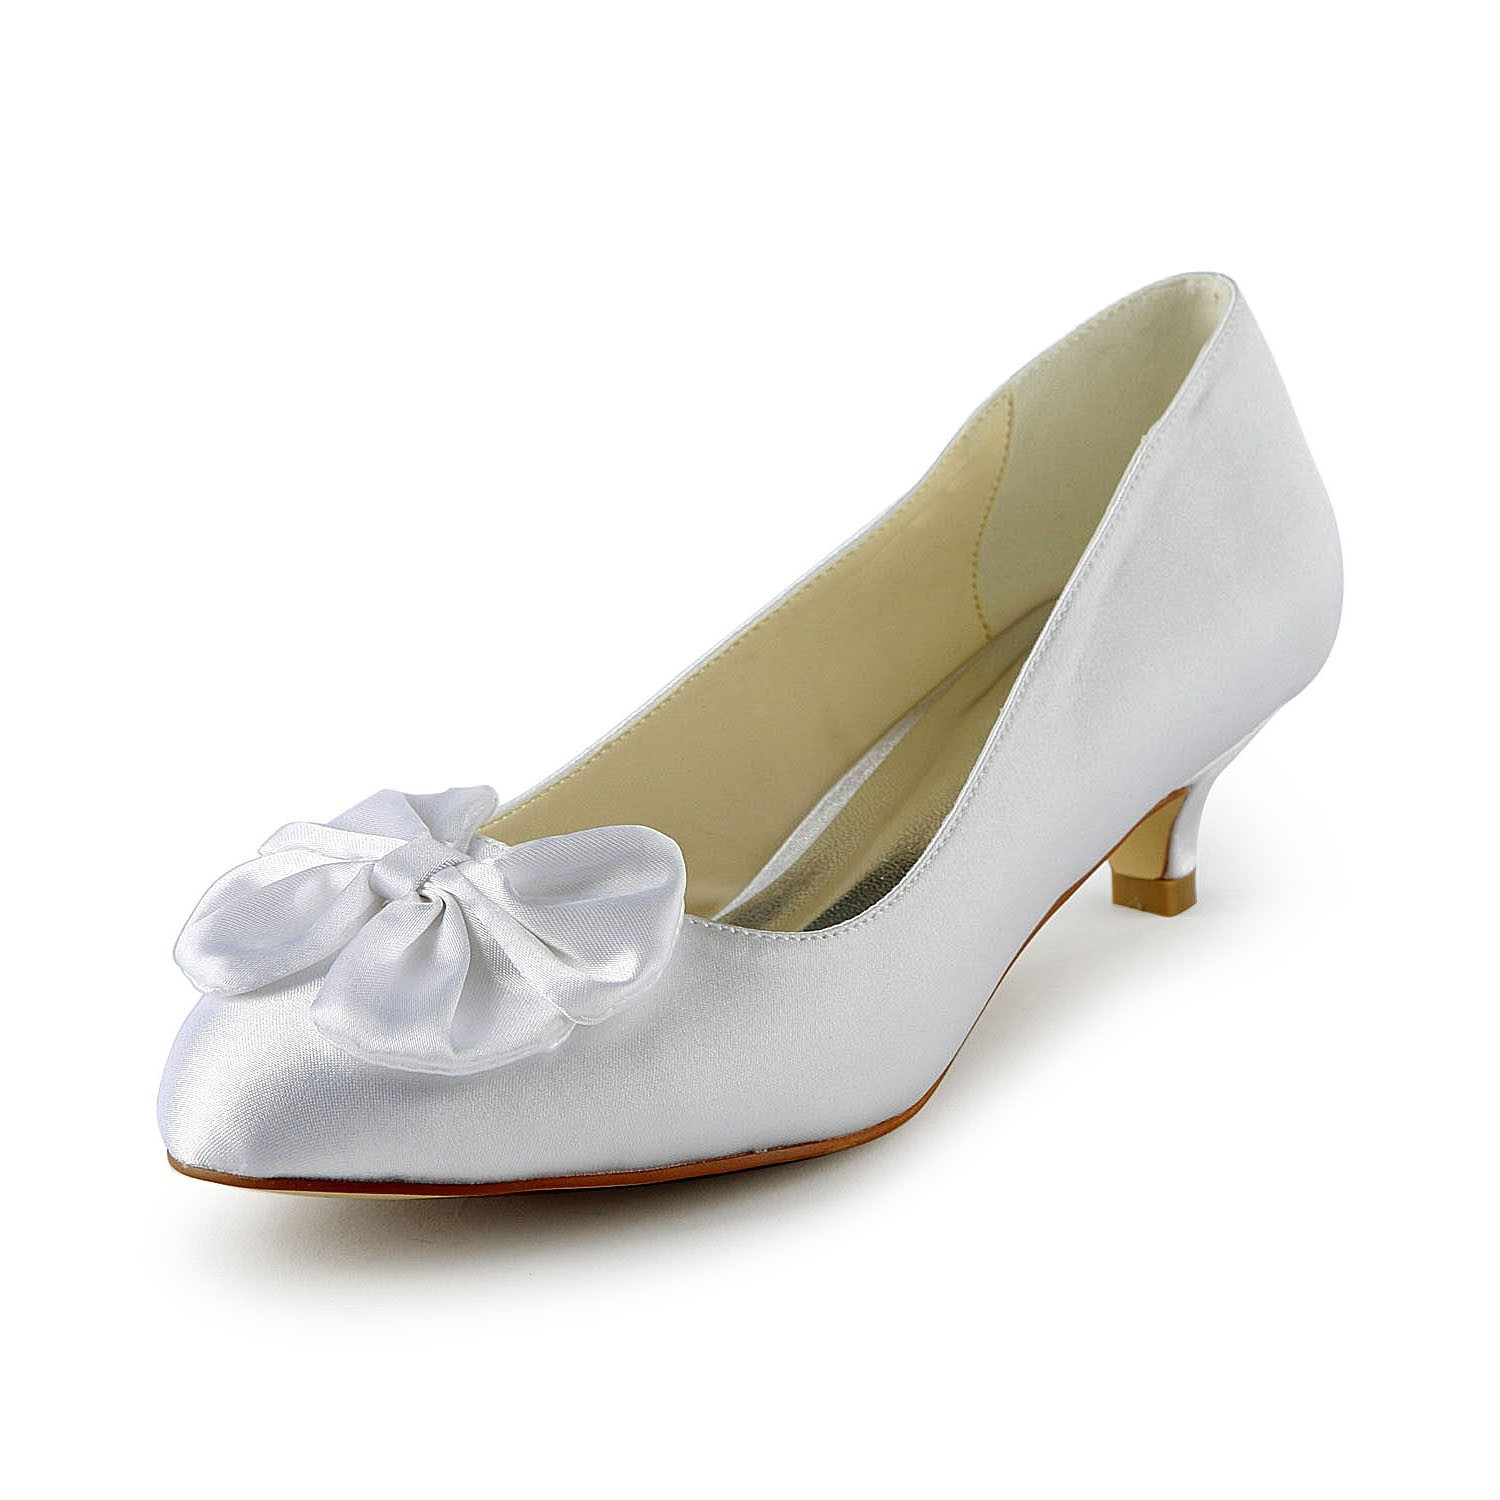 Fashion Trends Women\'s Satin Kitten Heel Pumps With Bowknot White ...